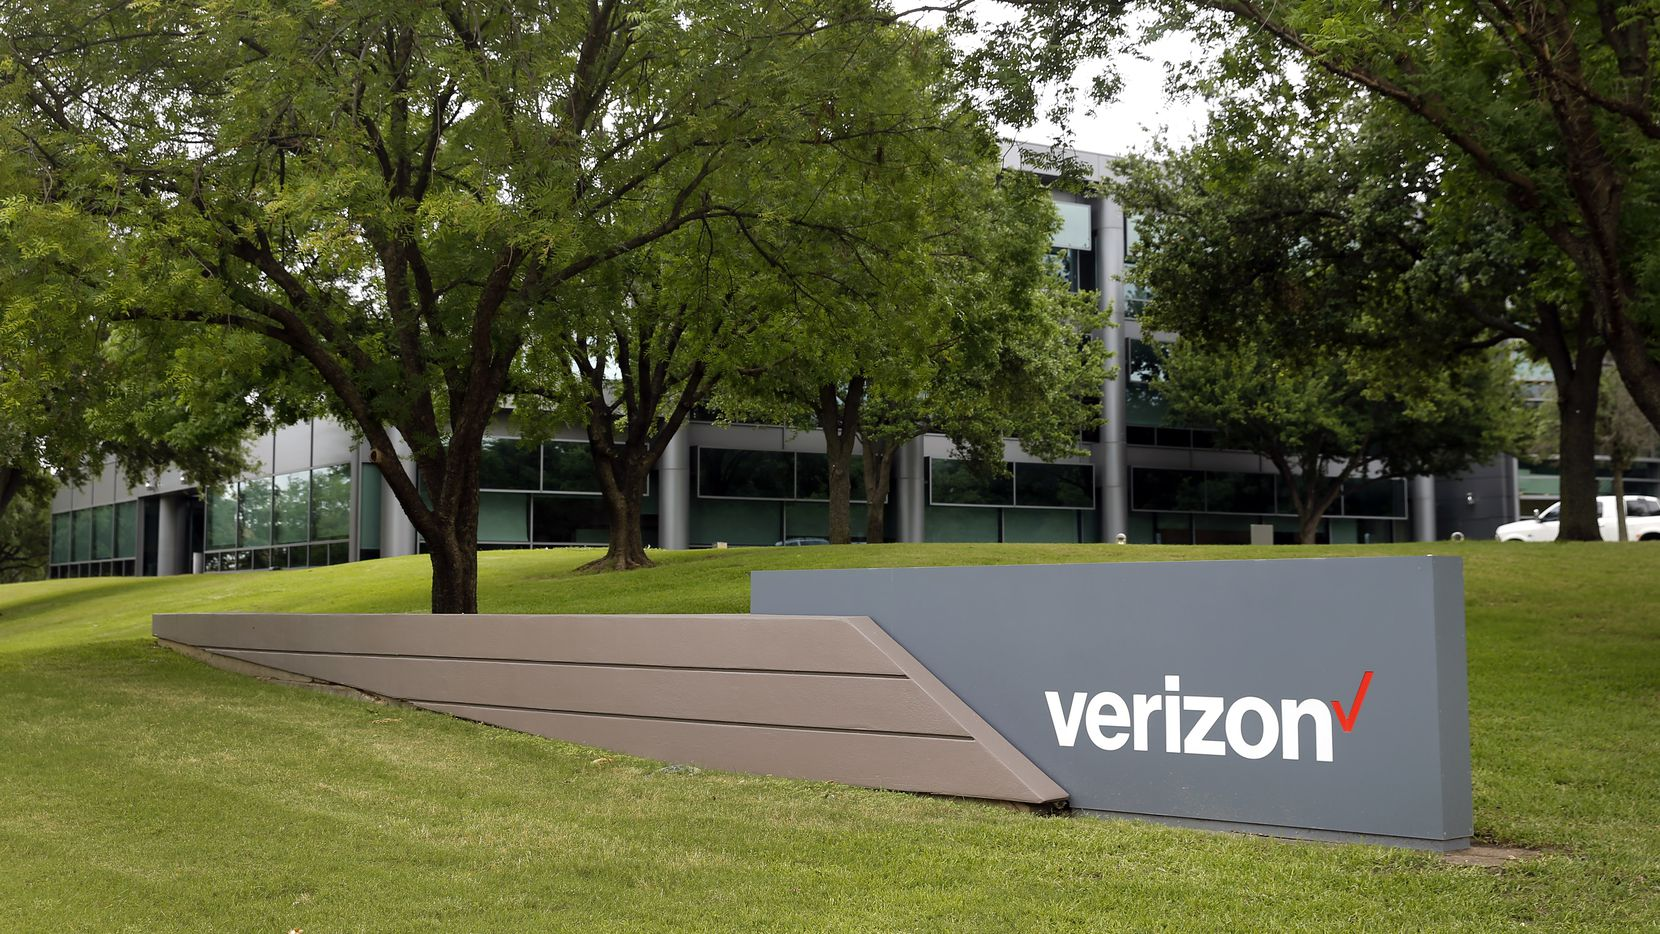 Verizon, which has a major presence in Irving, was previously offering up to $800.